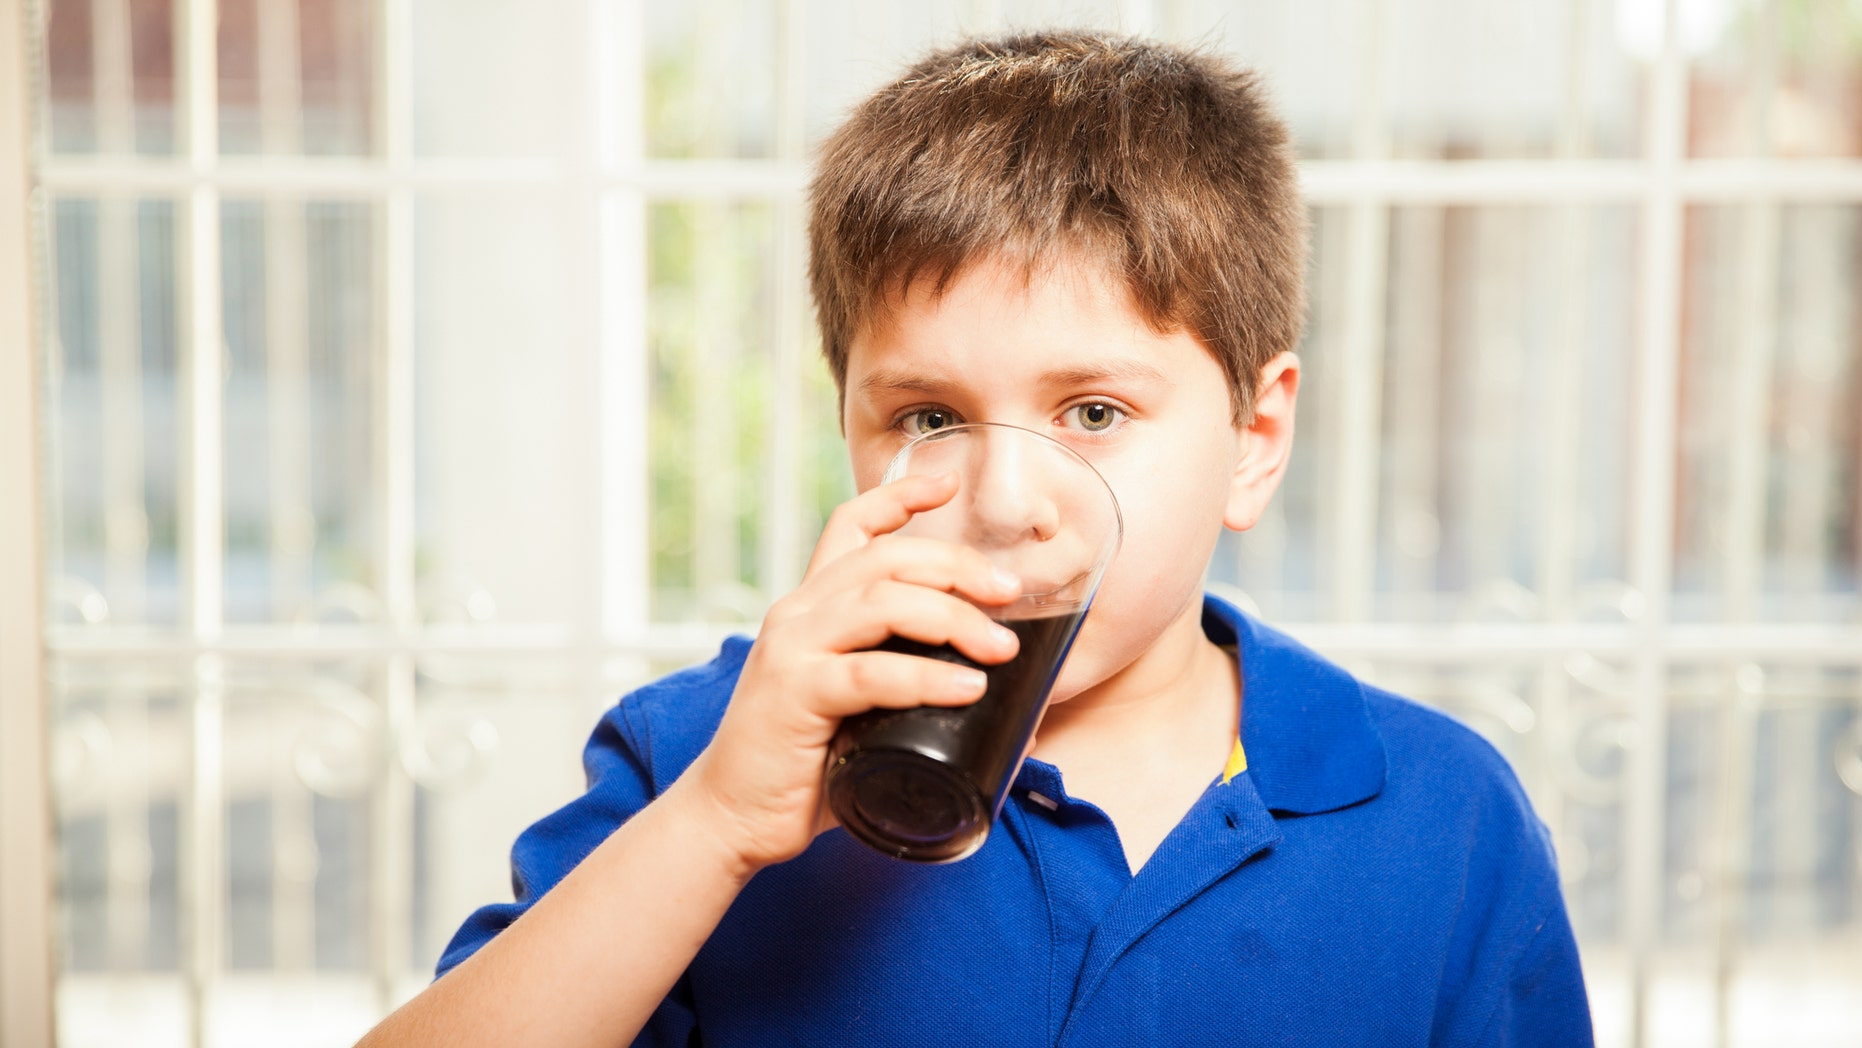 Portrait of a young boy drinking soda from a glass at home